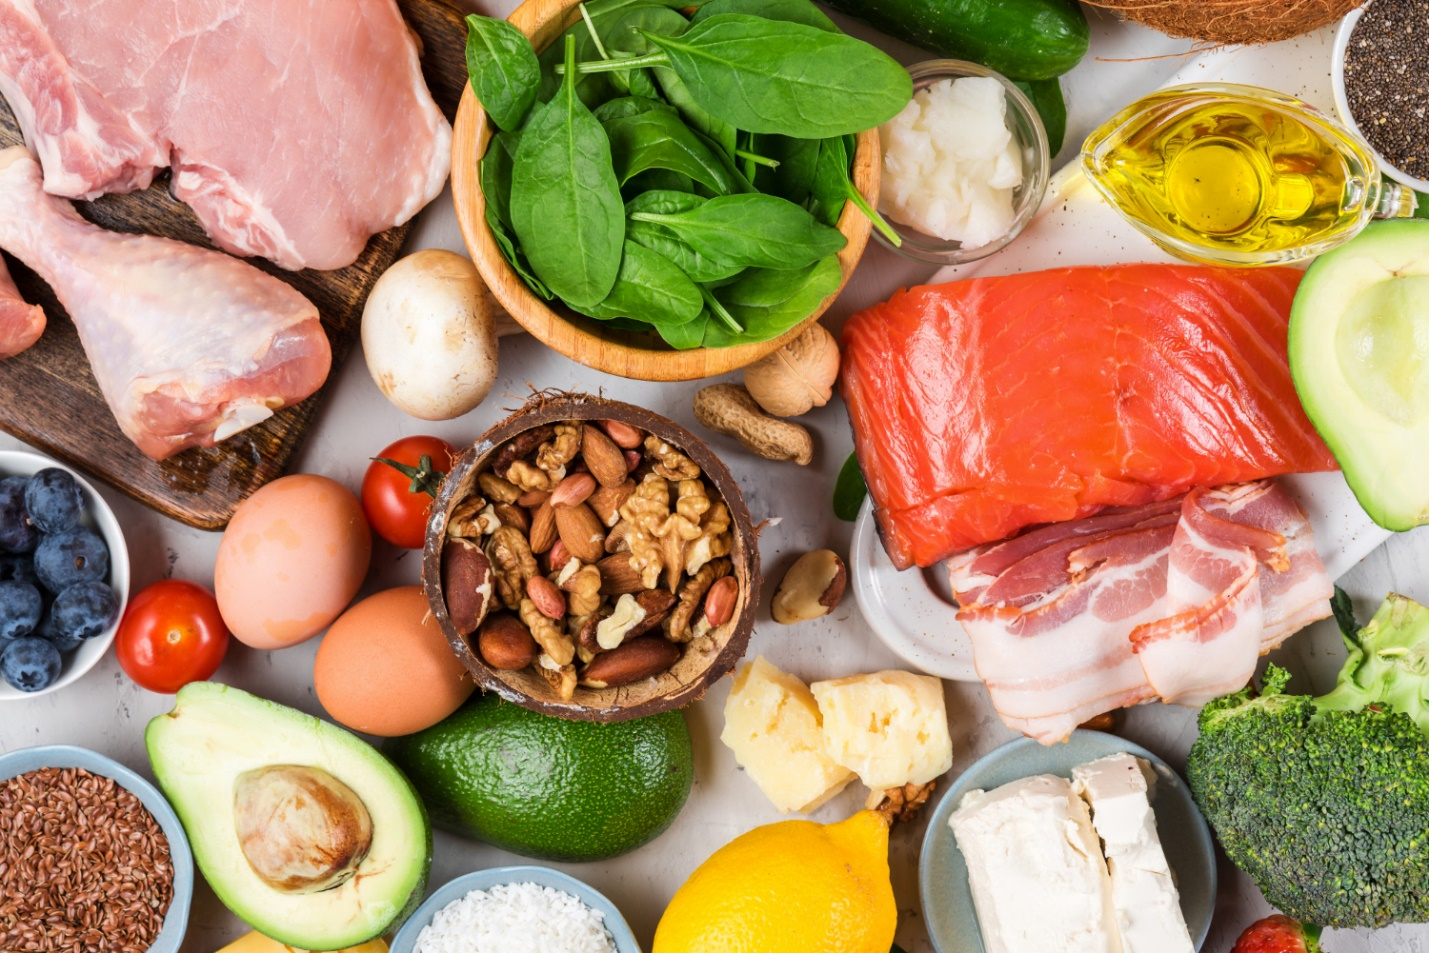 C:\Users\Dell\Downloads\ketogenic-diet-food-healthy-low-carbs-products-keto-diet-concept-vegetables-fish-meat-nuts-seeds-berries-cheese (1).jpg